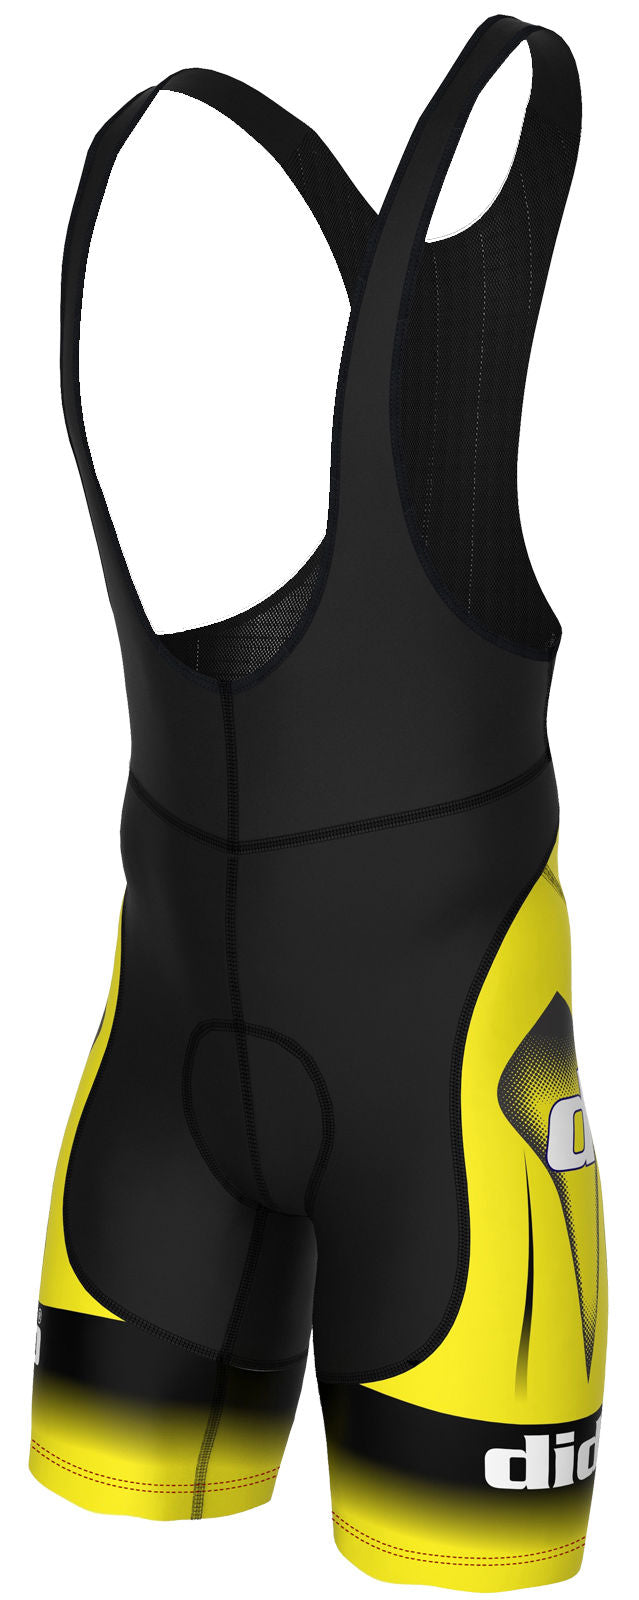 DiDOO Men's Classic Cycling Bib Shorts